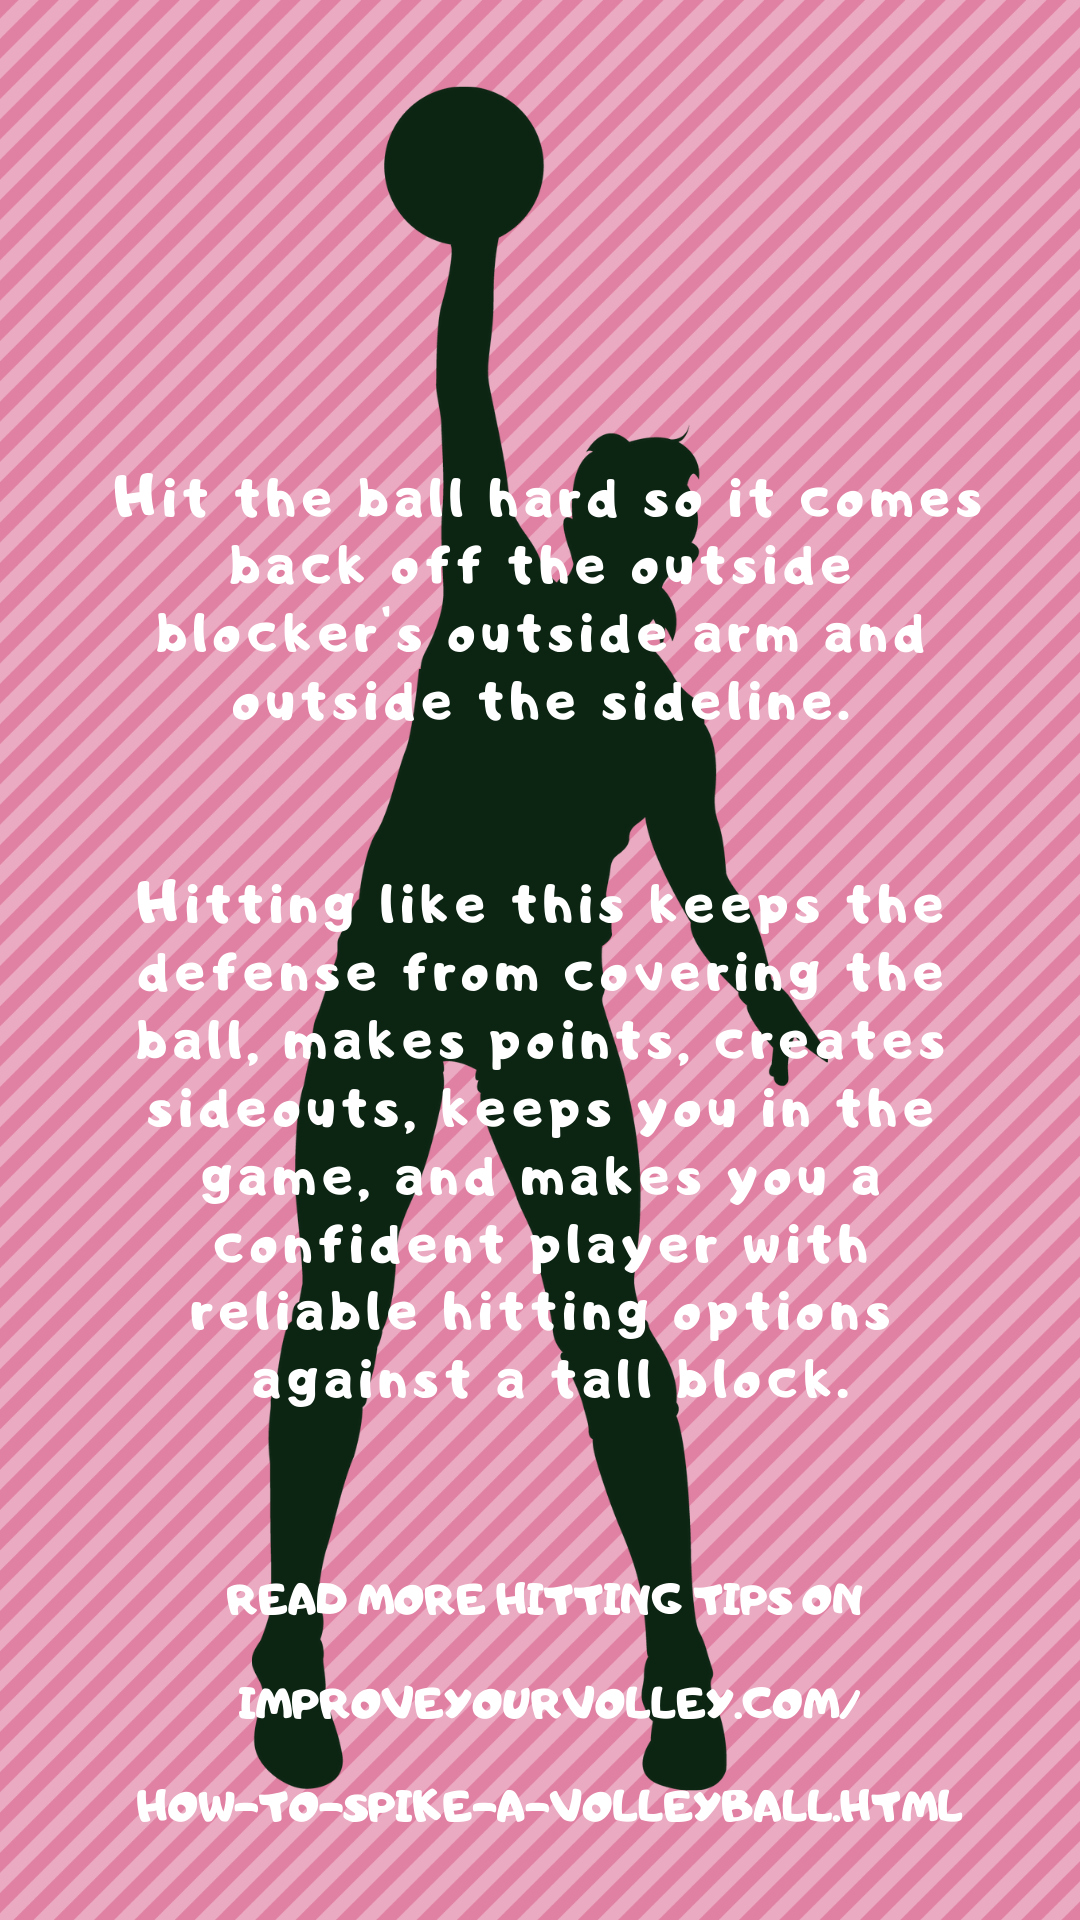 Hit the ball hard so it comes back off her arm and outside the sideline. Hitting like this keeps the defense from covering the ball, makes points, creates sideouts, keeps you in the game